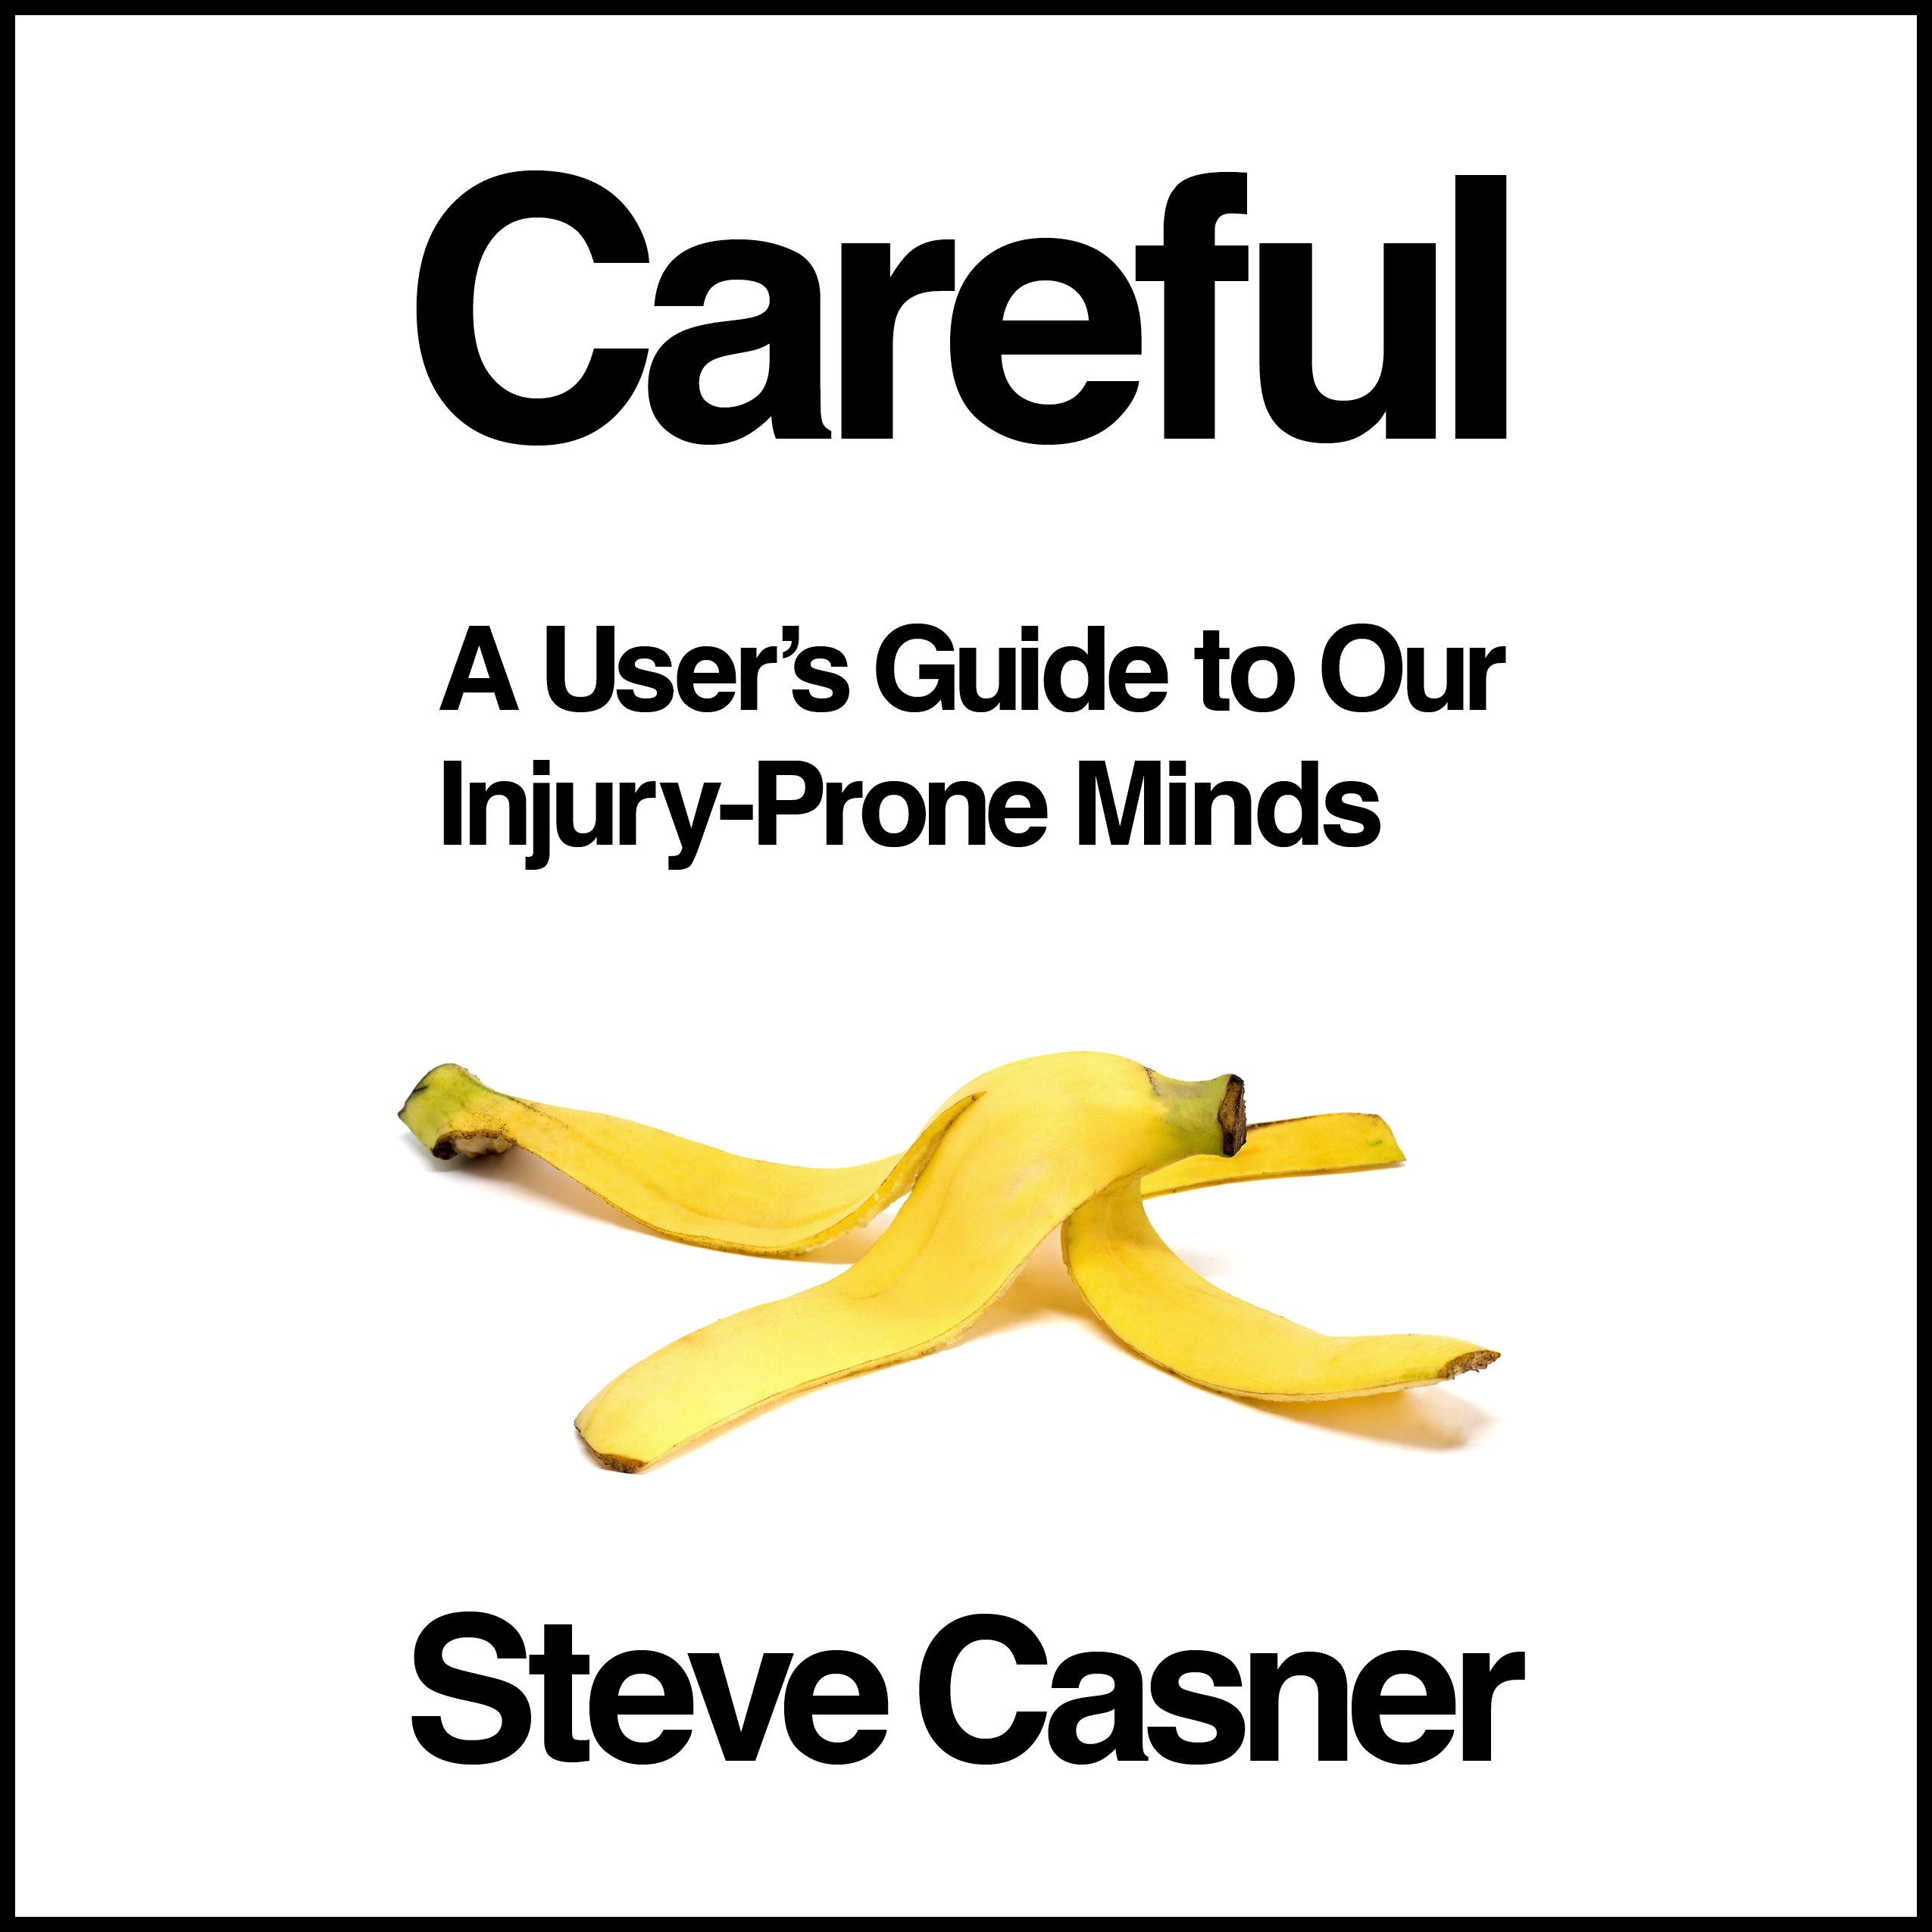 Careful!: A User's Guide to Our Injury-Prone Minds